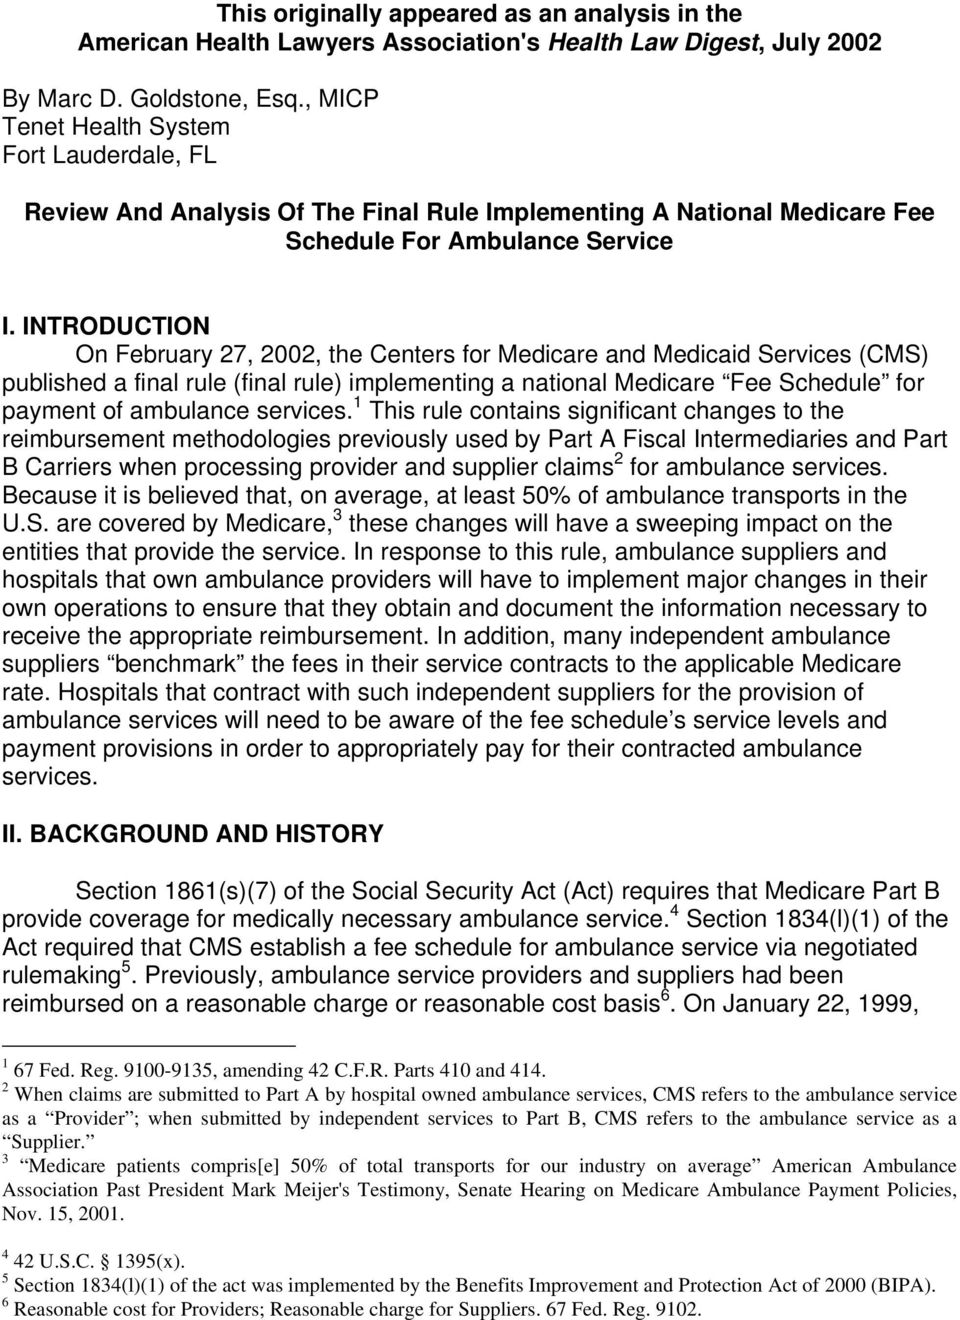 INTRODUCTION On February 27, 2002, the Centers for Medicare and Medicaid Services (CMS) published a final rule (final rule) implementing a national Medicare Fee Schedule for payment of ambulance